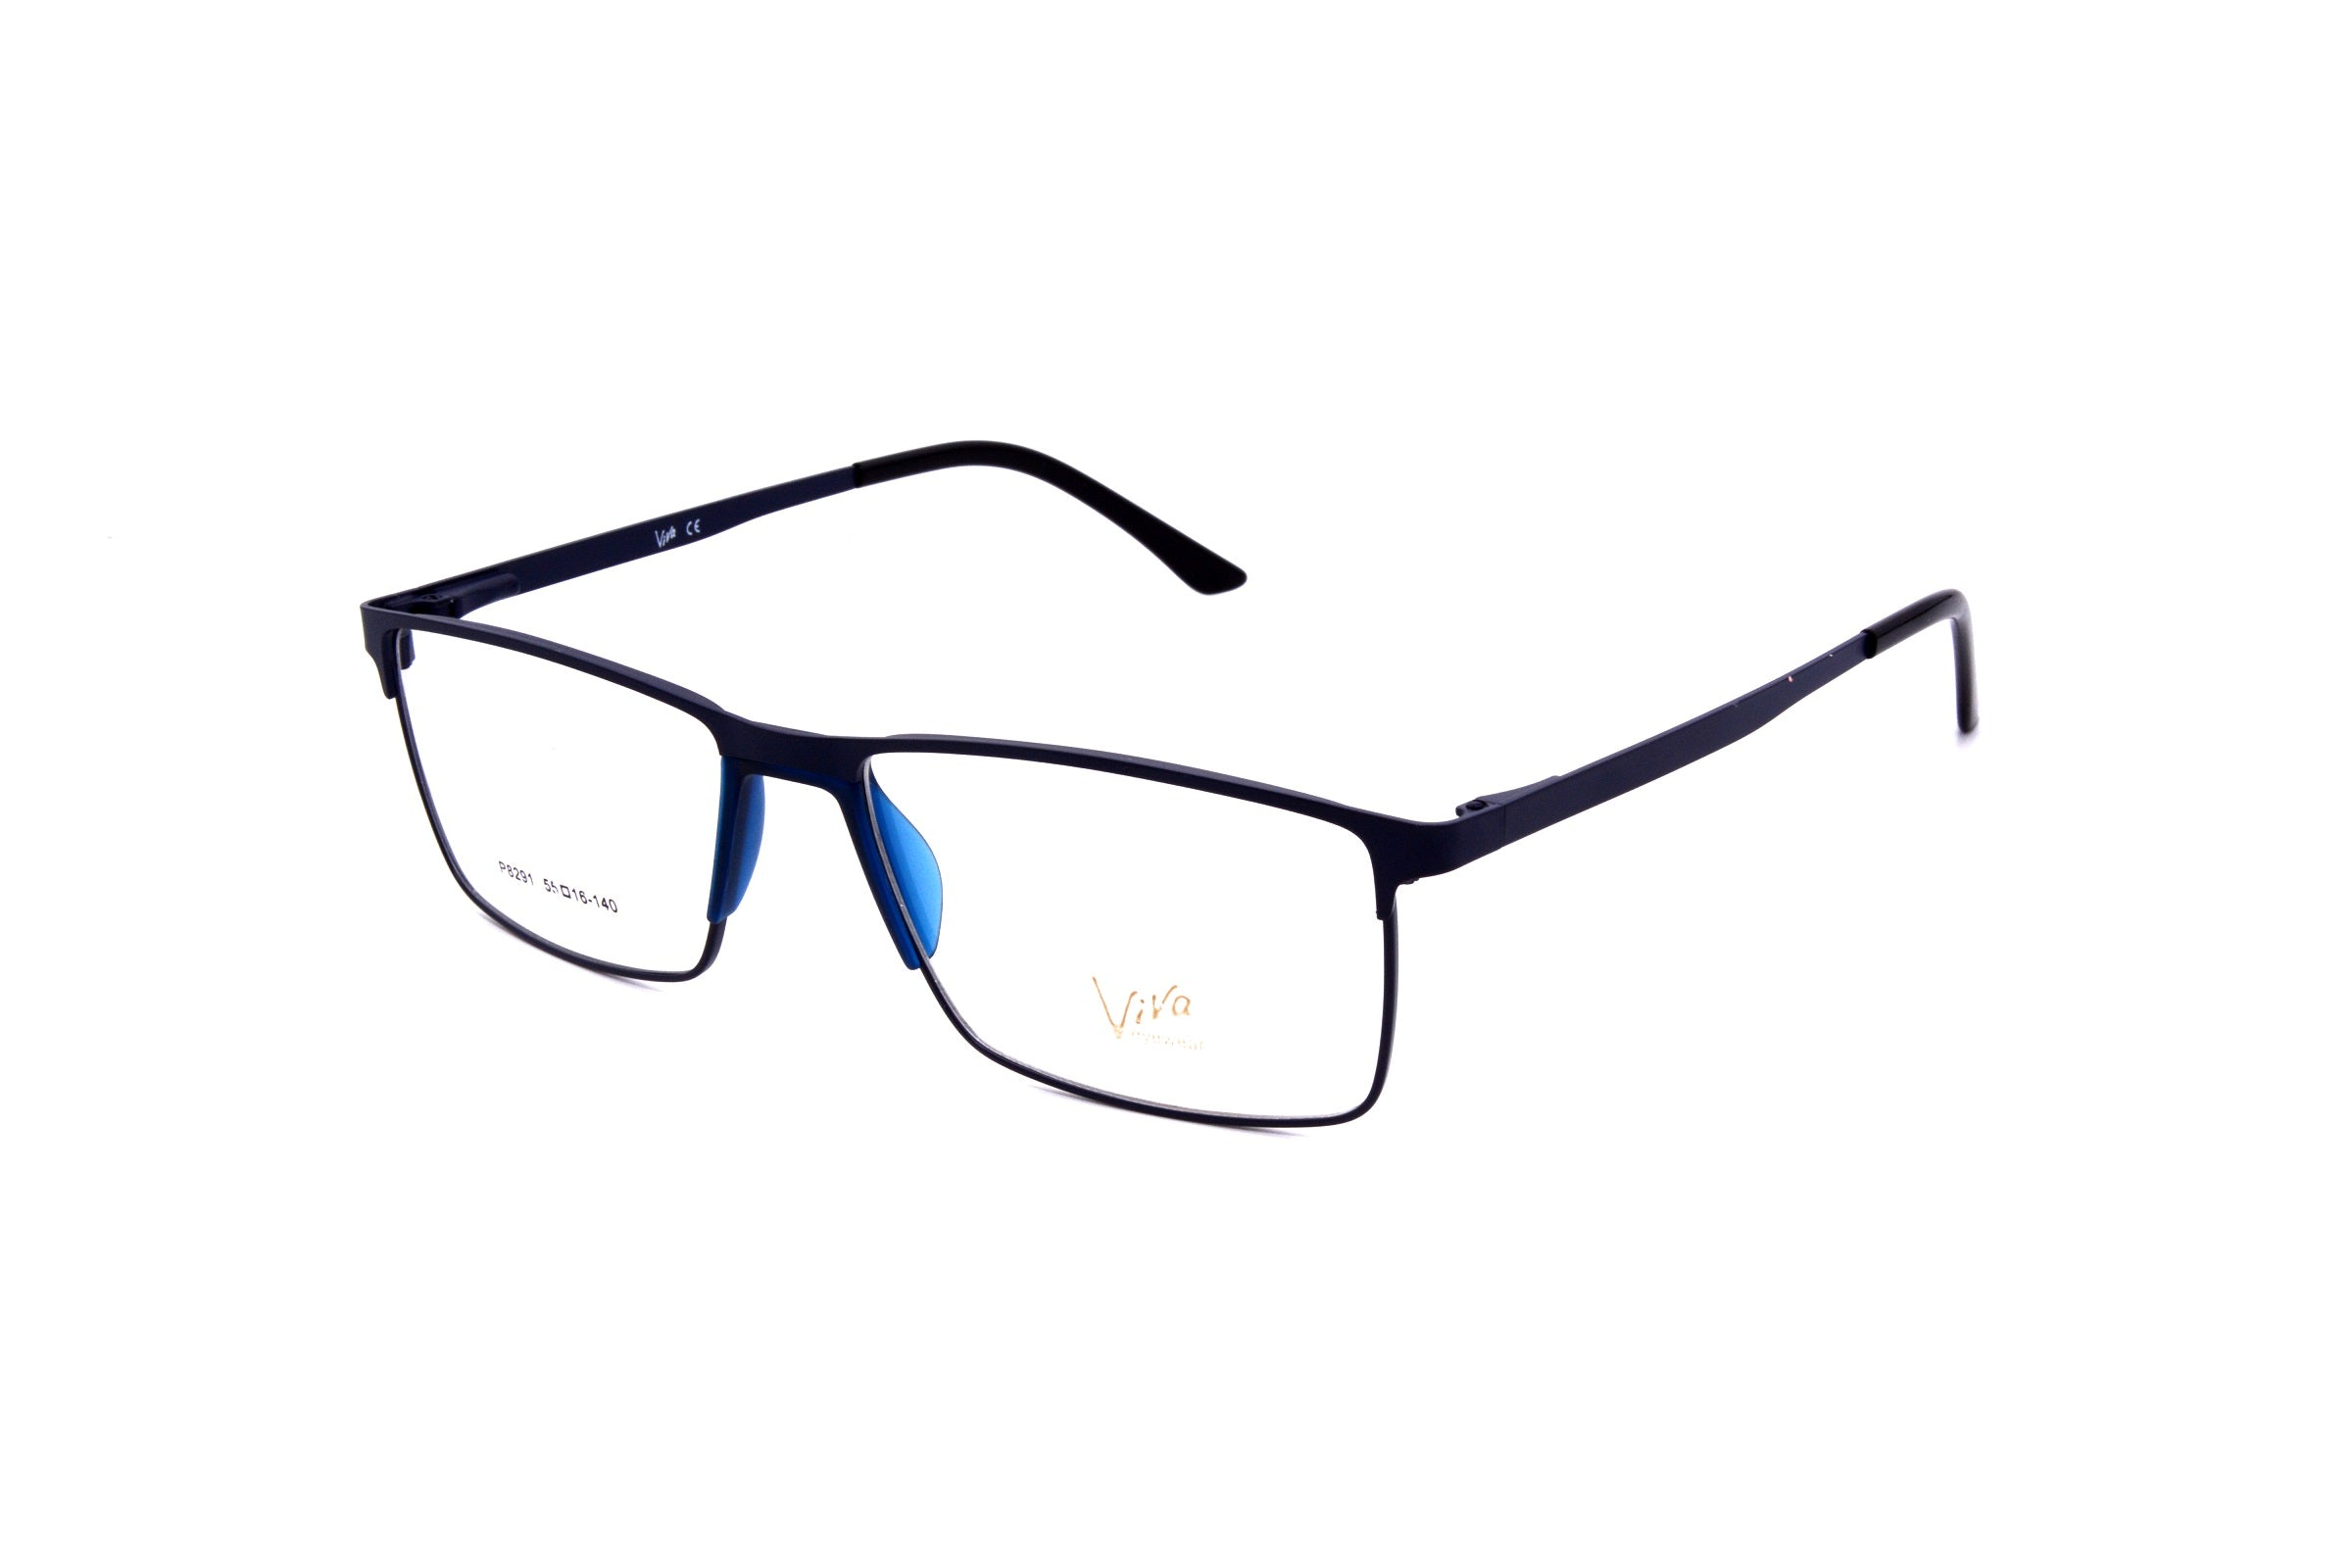 Viva eyewear 8291, M6 - Optics Trading